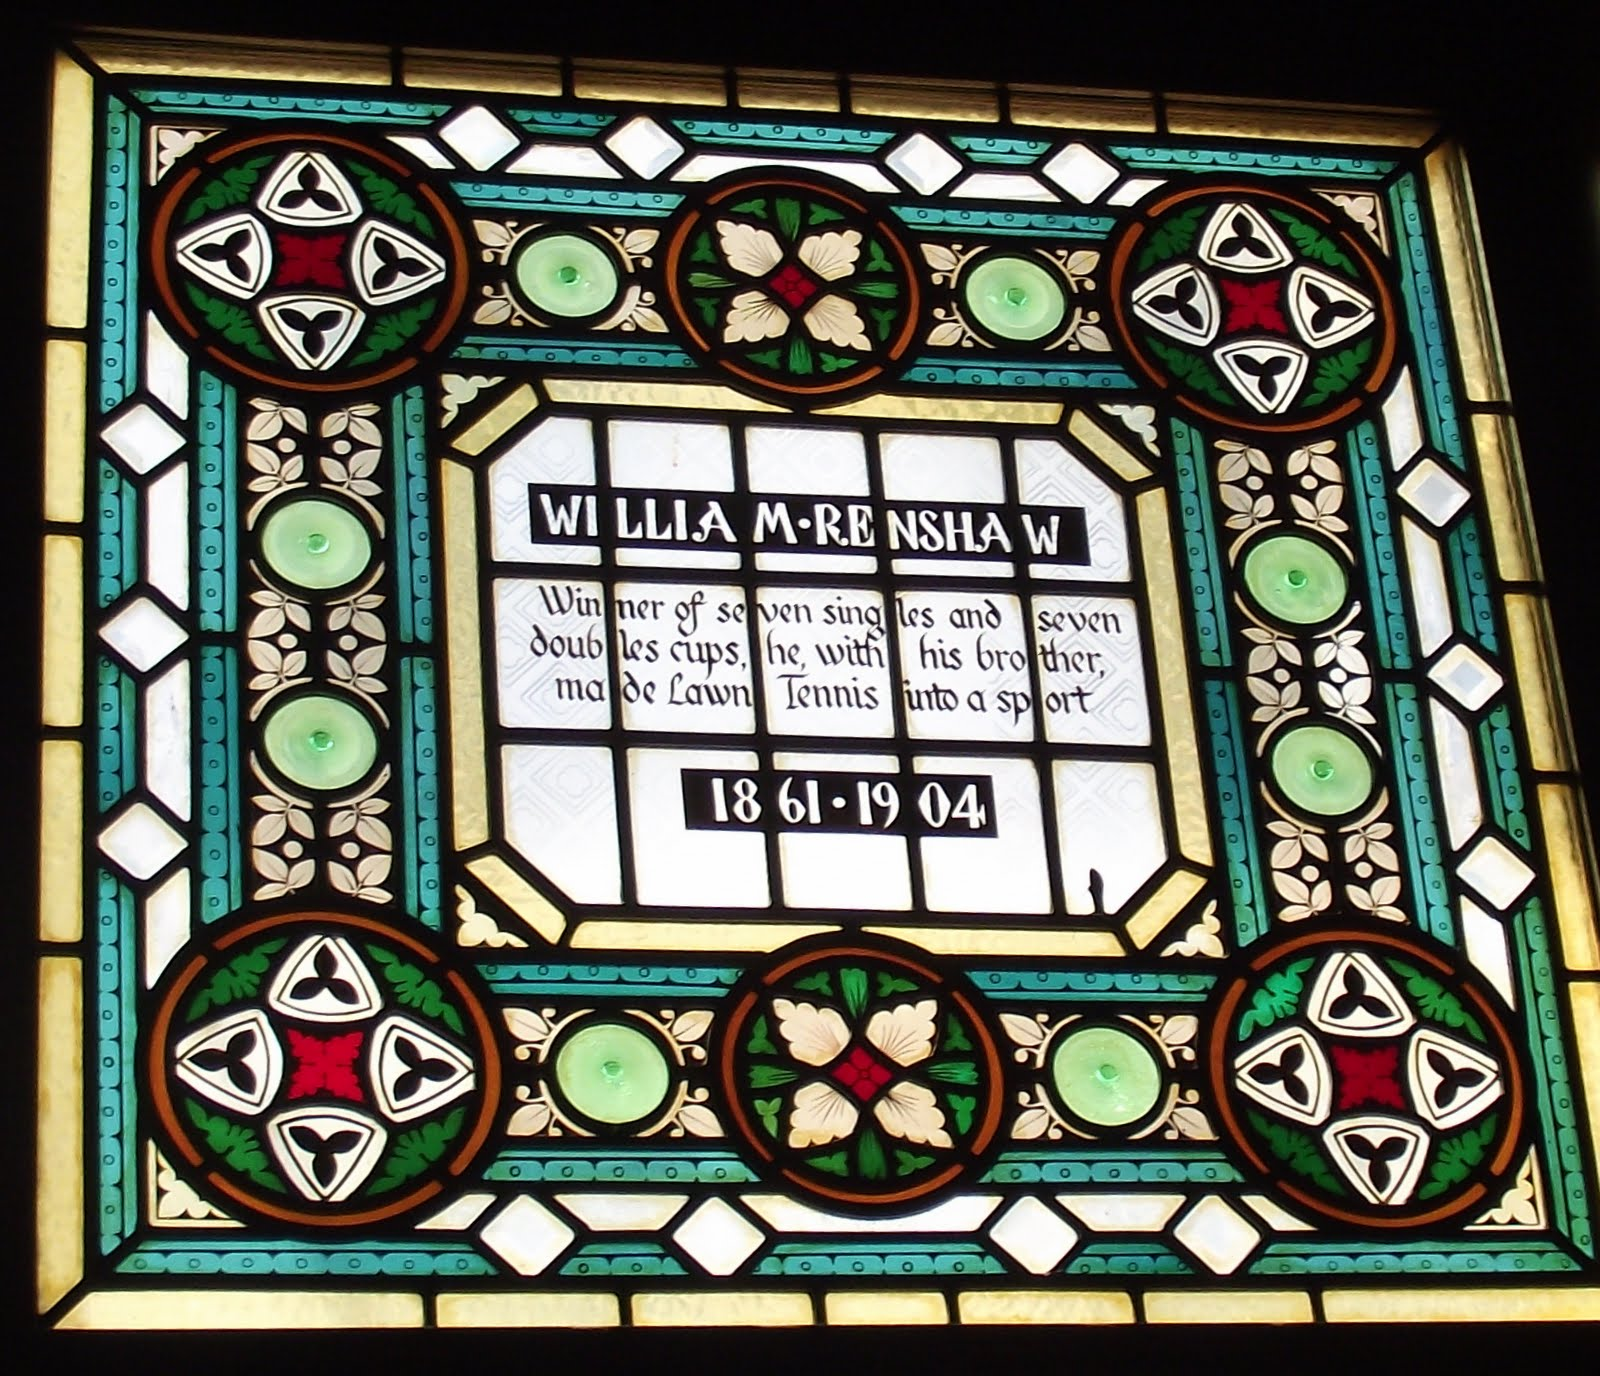 William Renshaw stained glass at the Champion pub